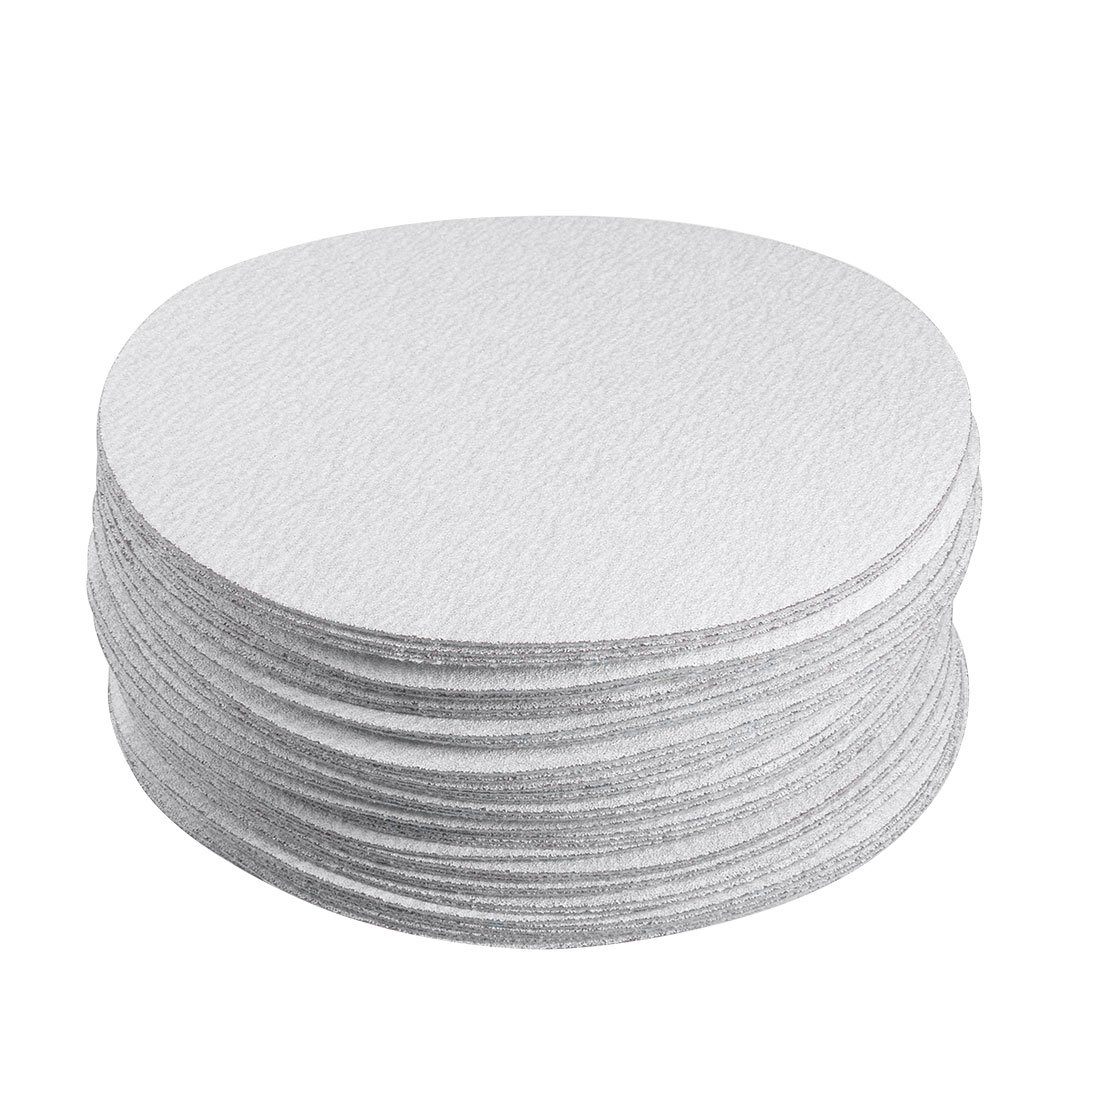 uxcell 50 Pcs 6-Inch Aluminum Oxide White Dry Hook and Loop Sanding Discs Flocking Sandpaper 180 Grit